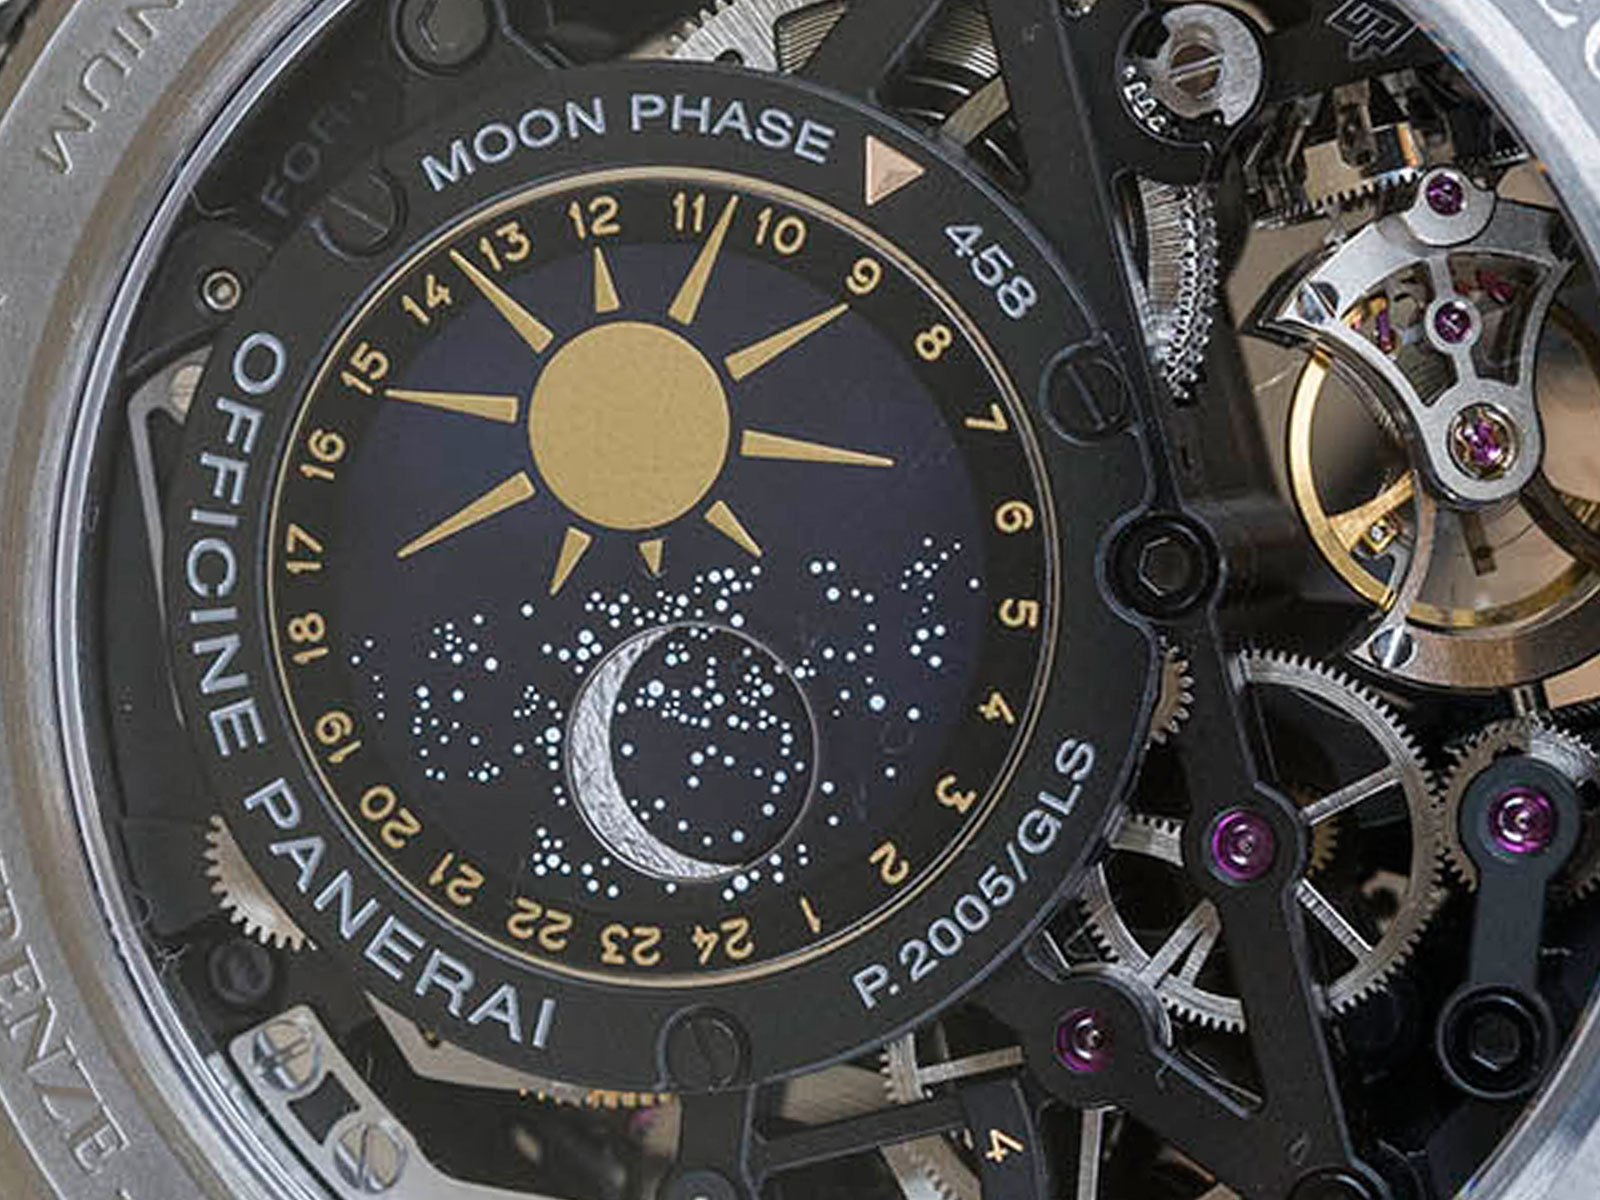 Panerai-L-Astronomo-Luminor-1950-Tourbillon-Moon-Phases-Equation-of-Time-Gmt-Pam00920-10-.jpg